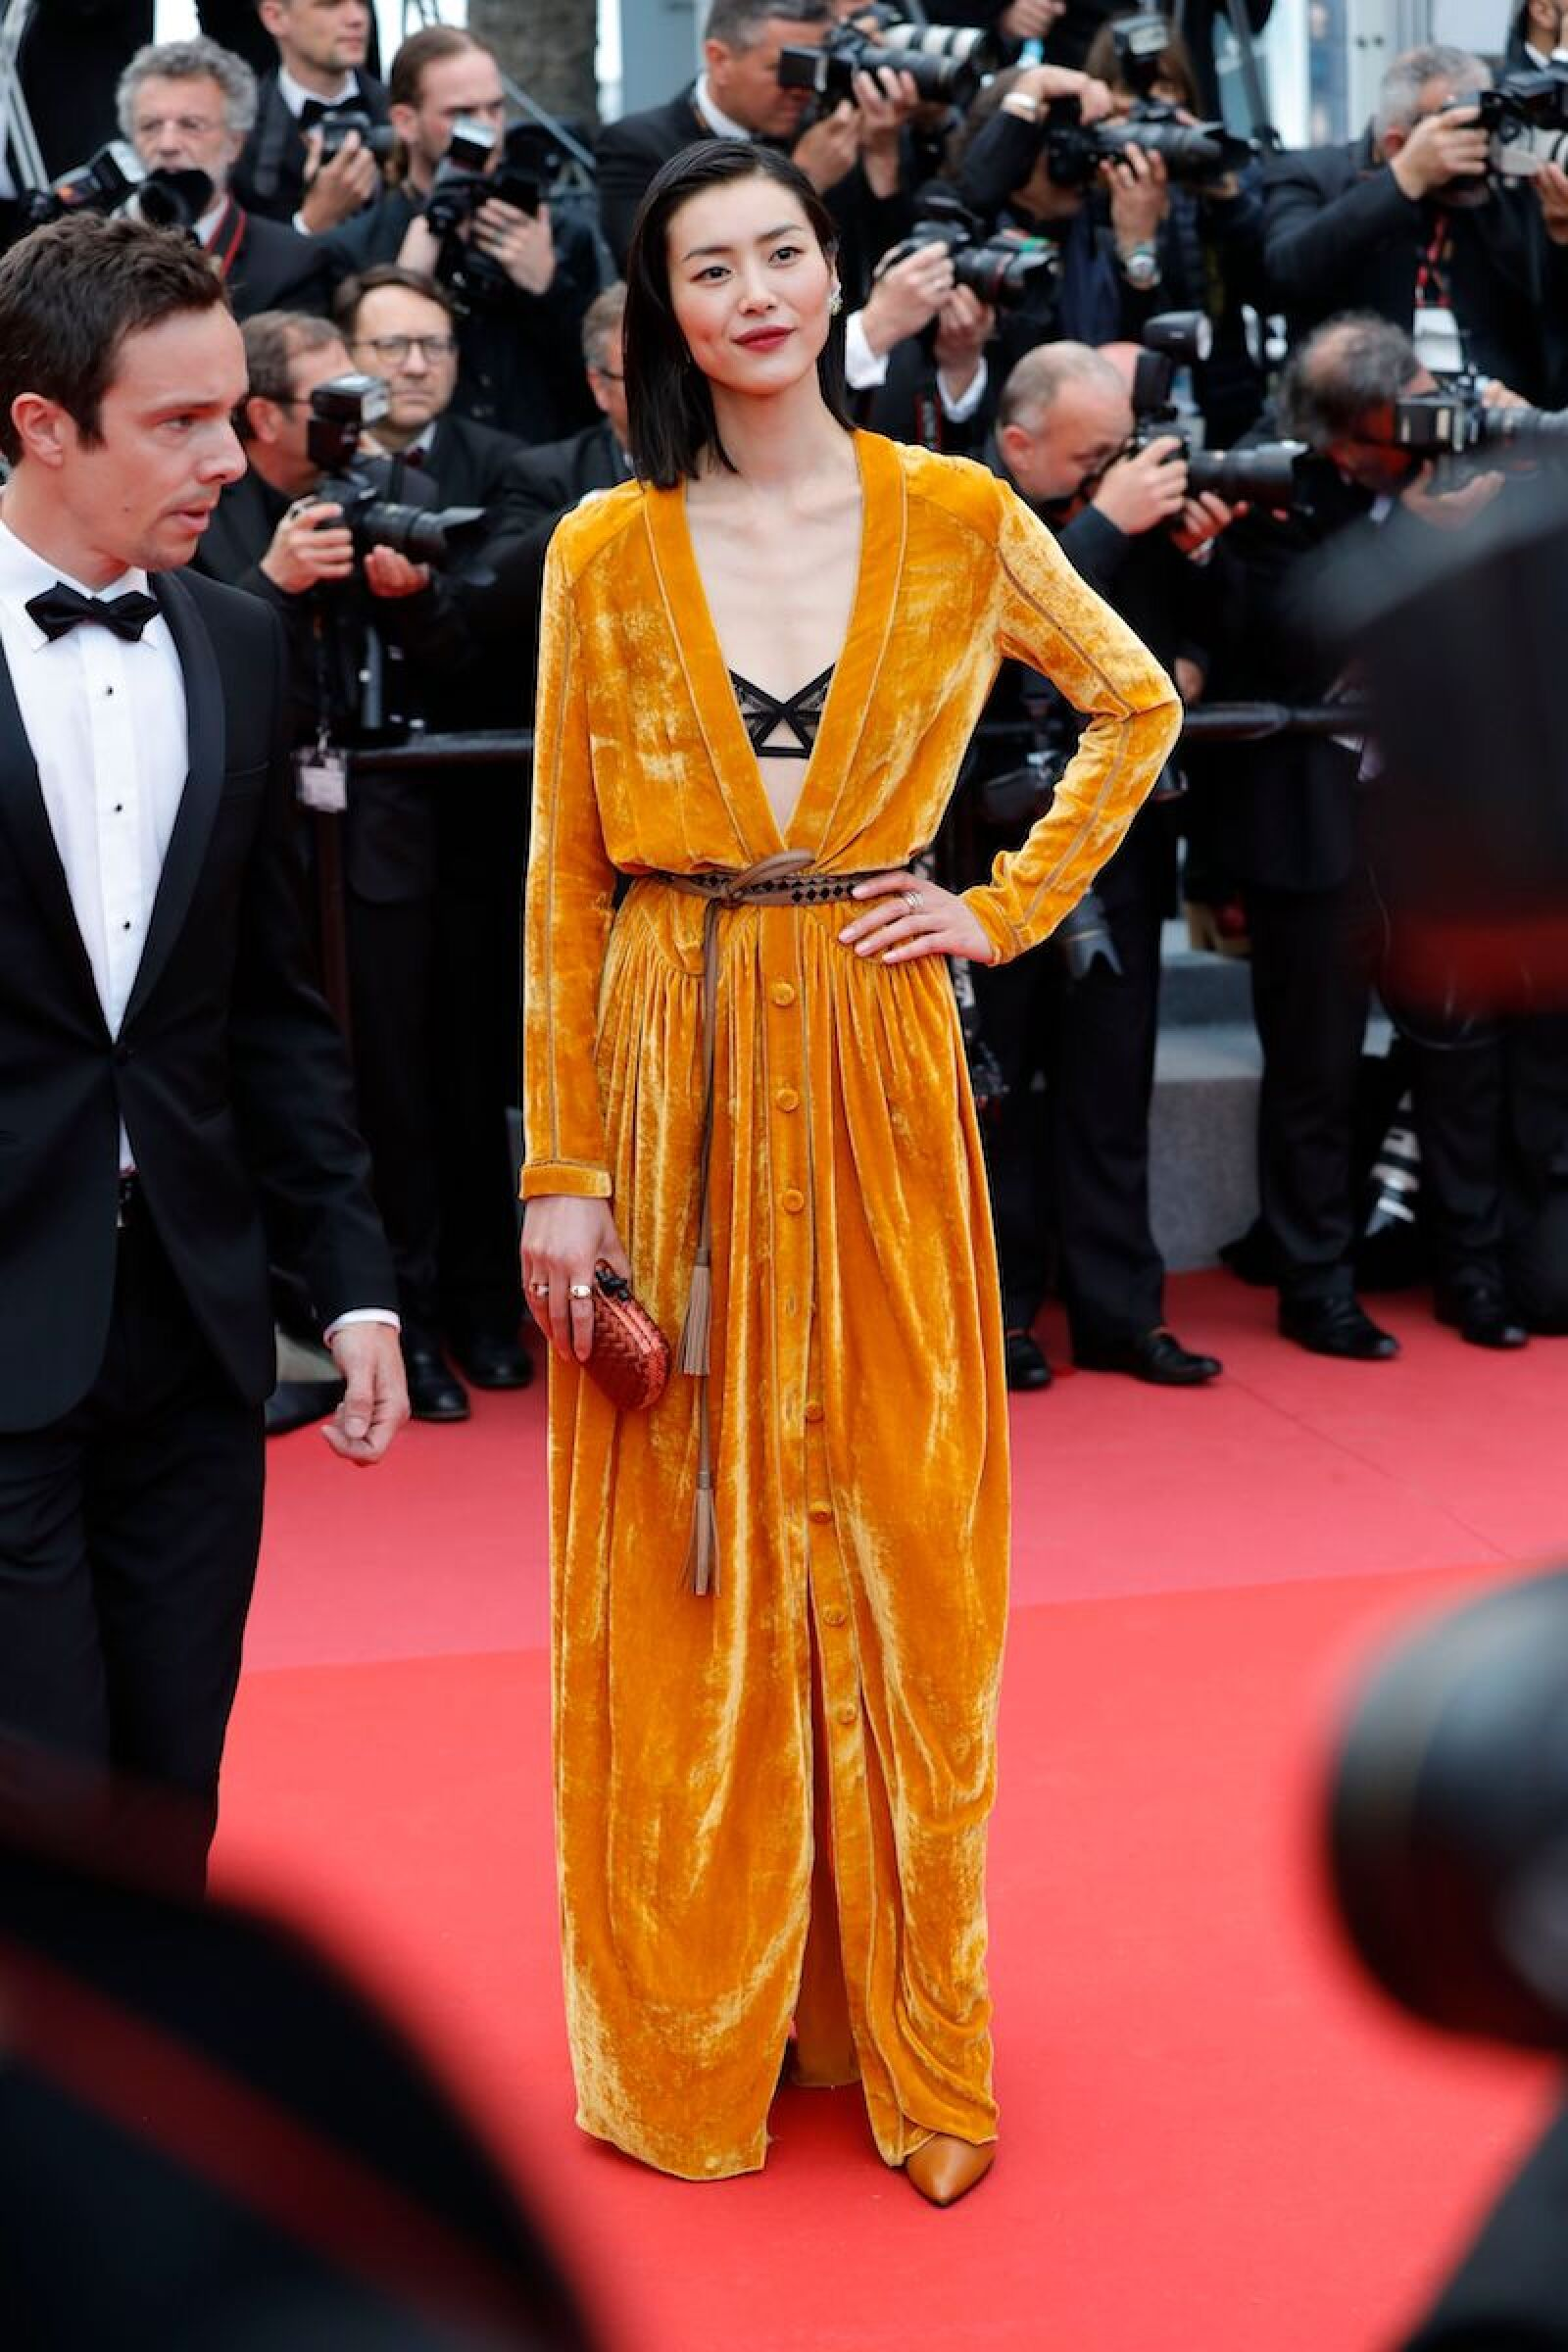 'Solo: A Star Wars Story' premiere, 71st Cannes Film Festival, France - 15 May 2018